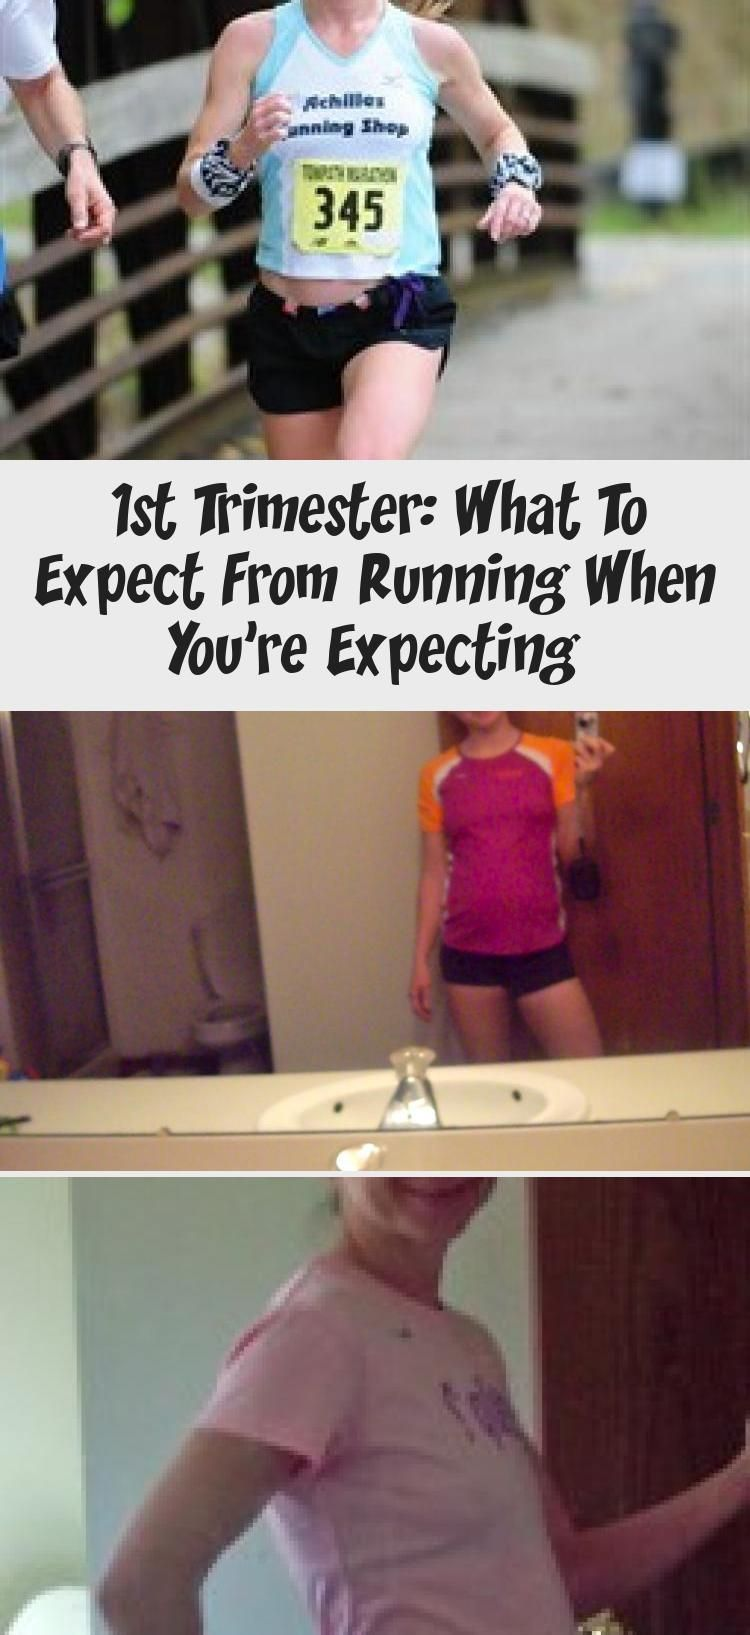 1st trimester what you can expect from running when you expect it  salty running pregnancy1sttrimesterFashion pregnancy1sttrimesterQuotes